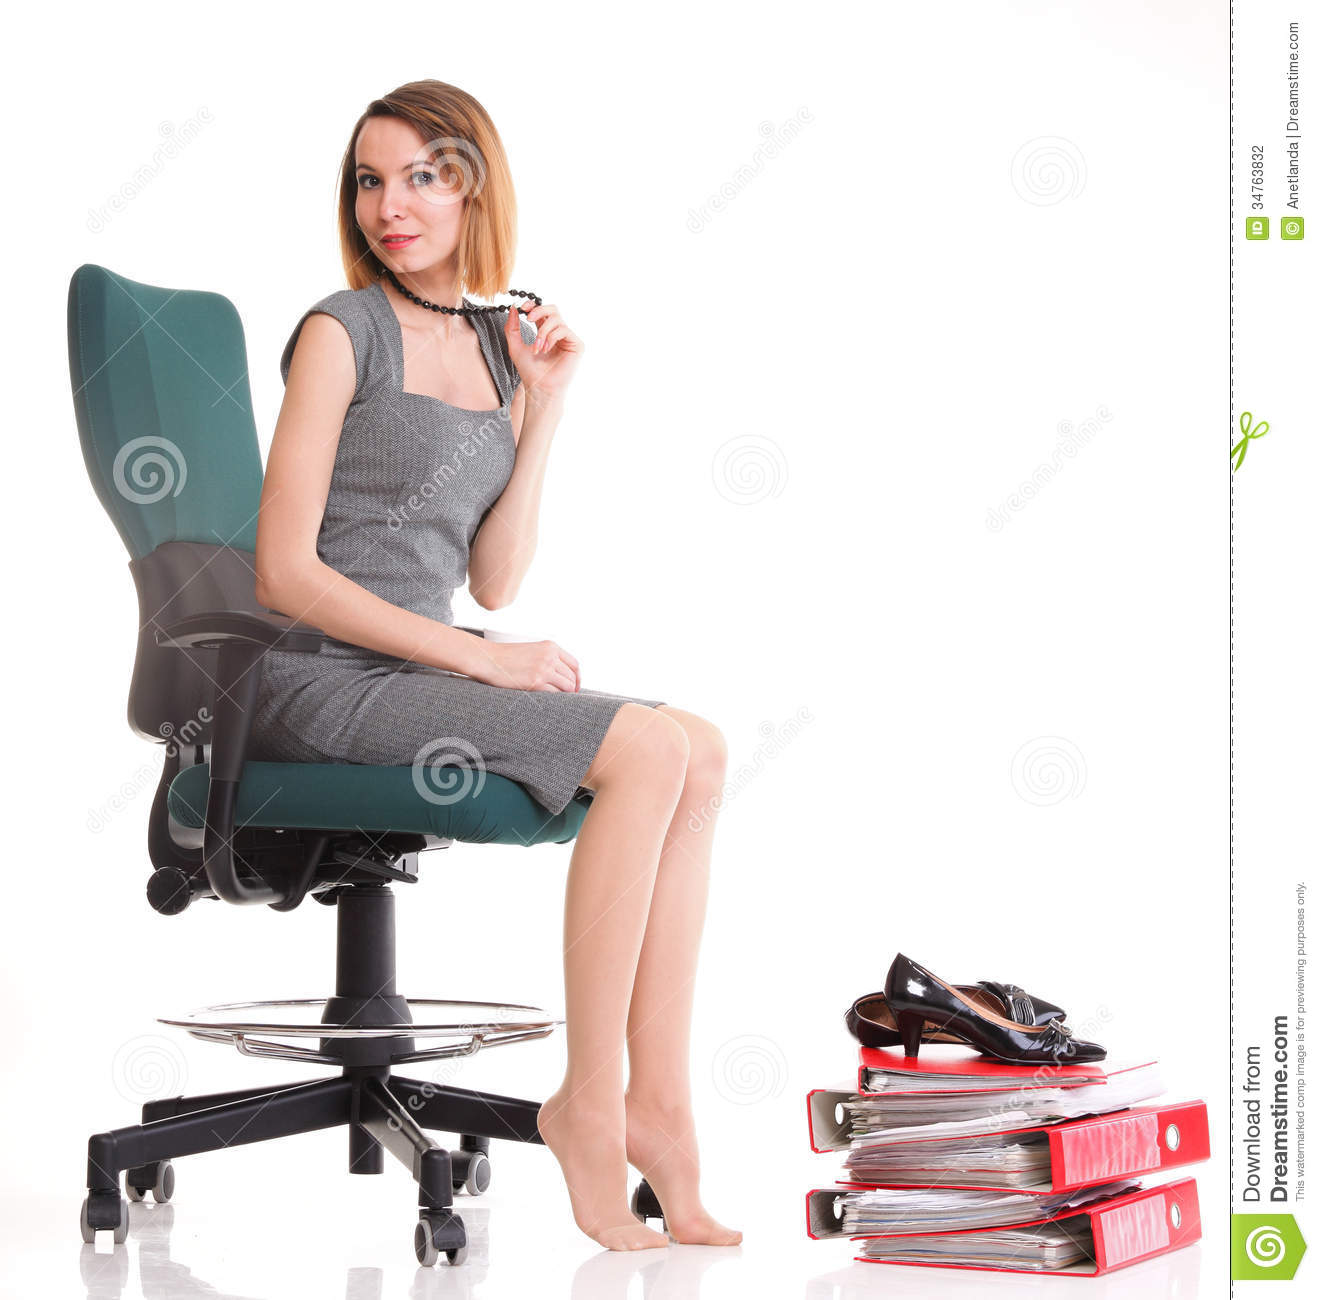 Girls Office Chair Happy Excited Young Businesswoman Relaxing In Office